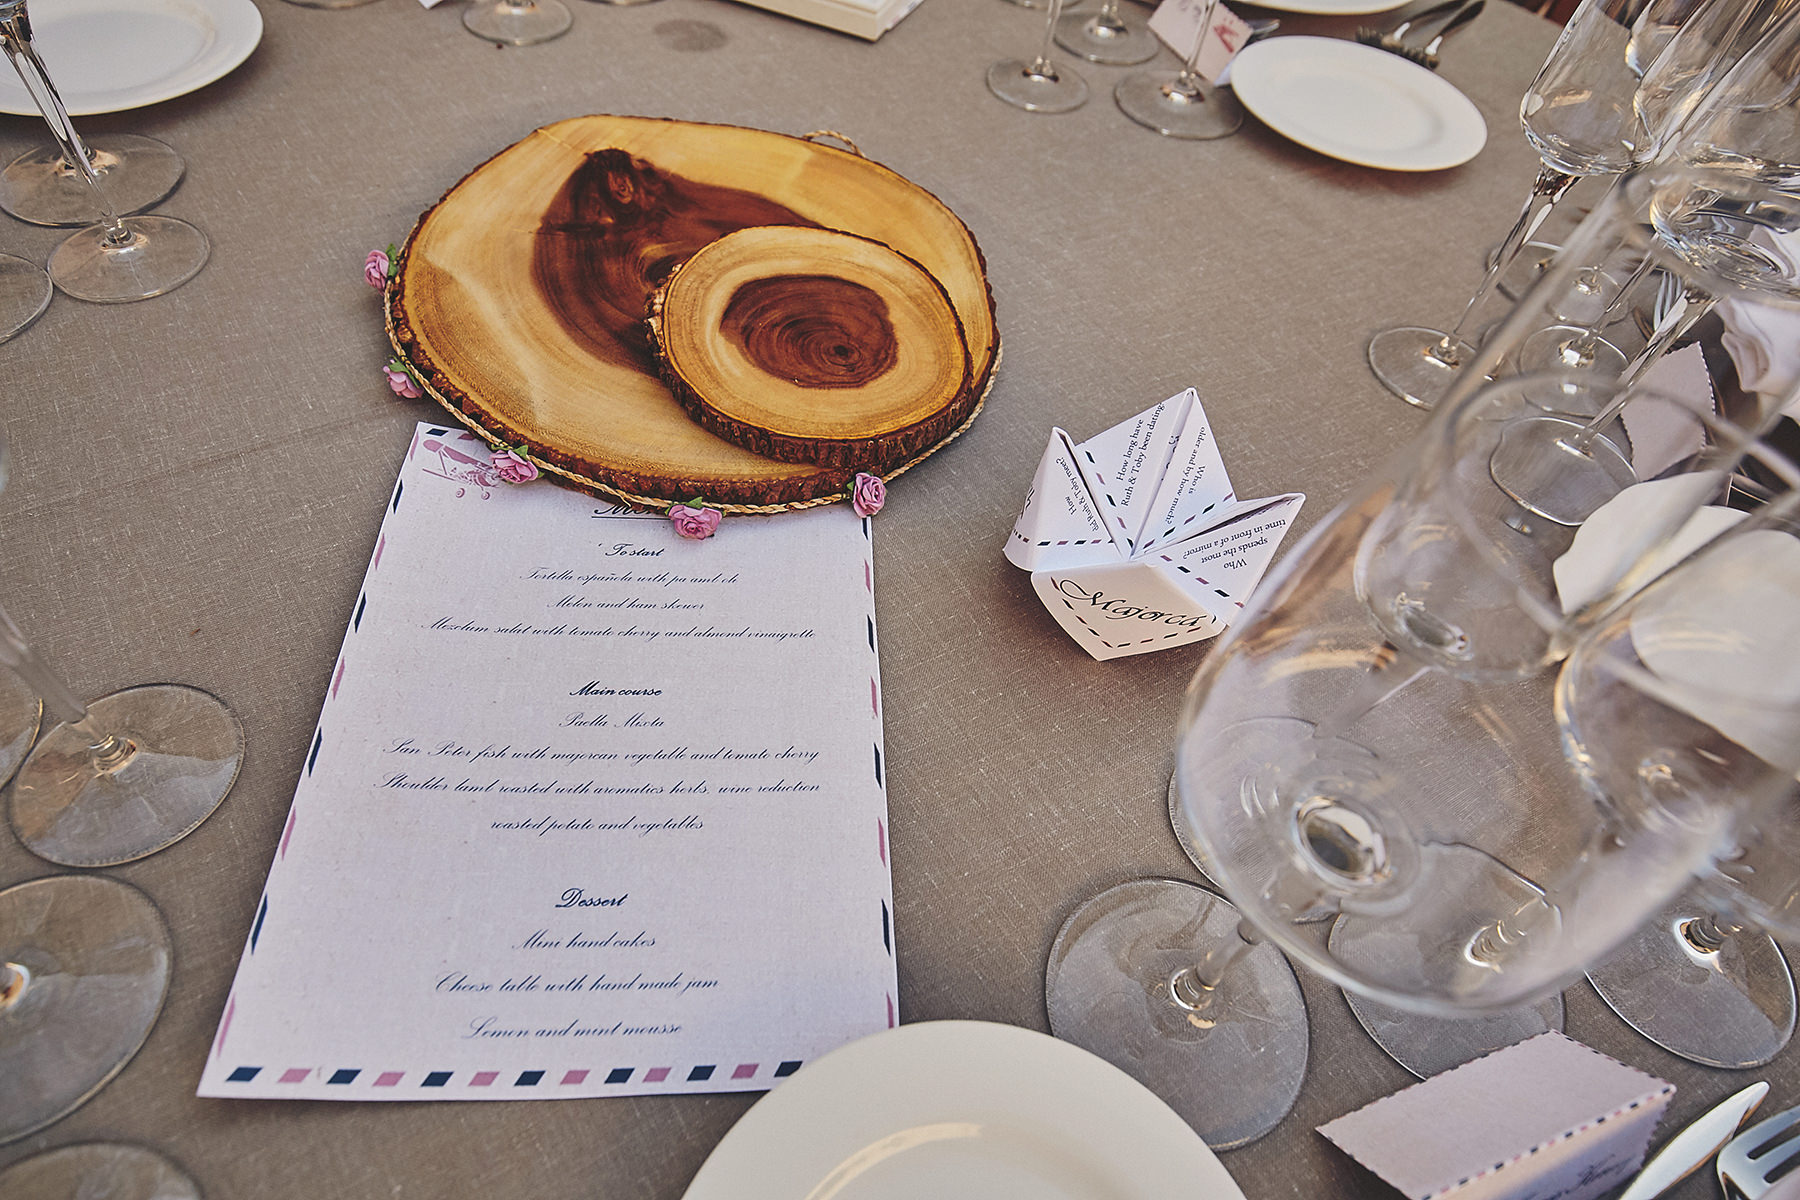 213 - Destination wedding in a magical Mallorca